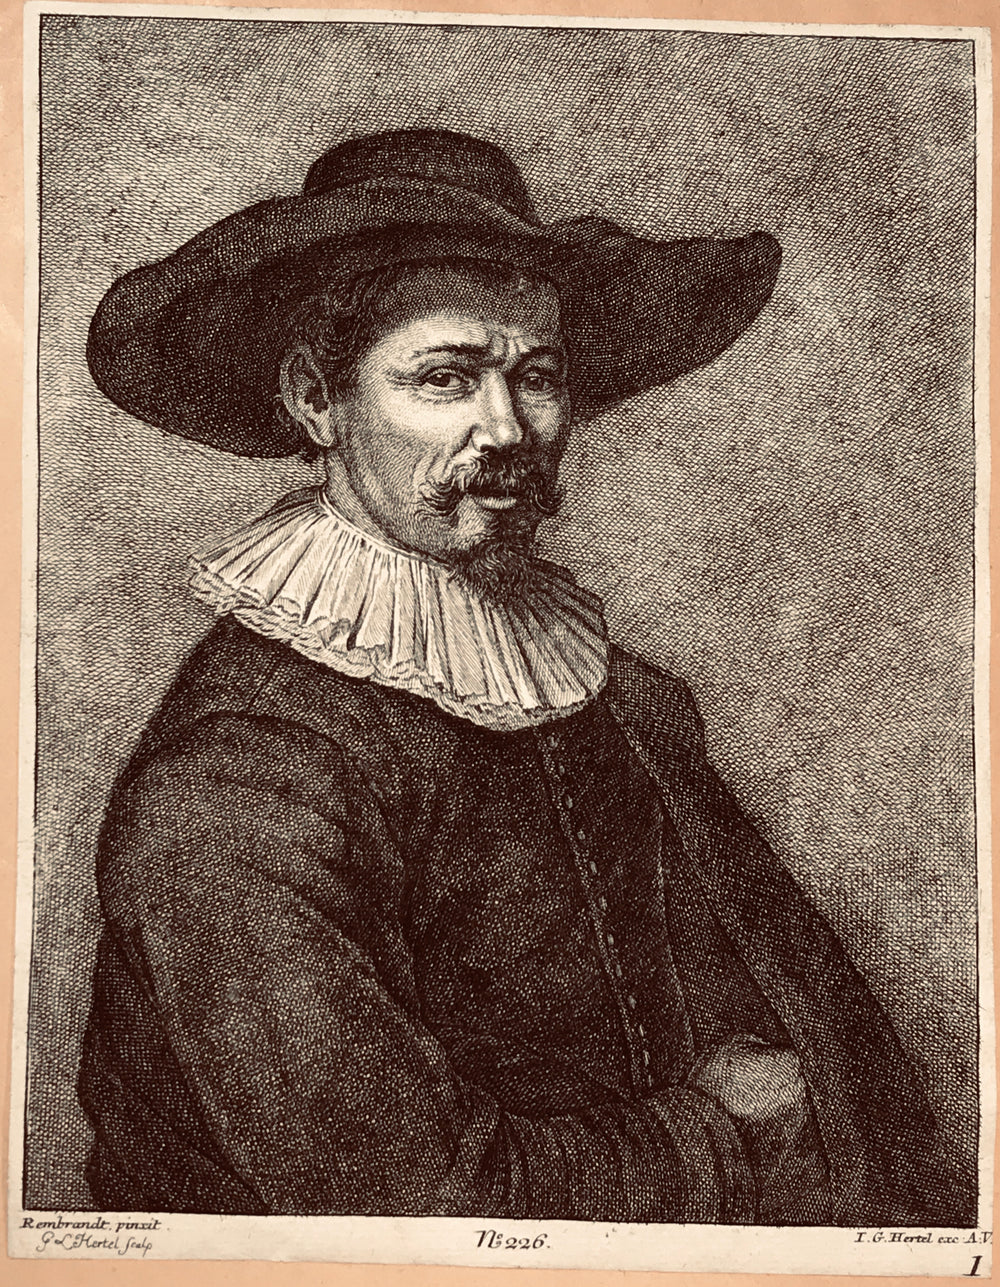 Portrait of Herman Doomer by Johann Georg Hertel After Rembrandt